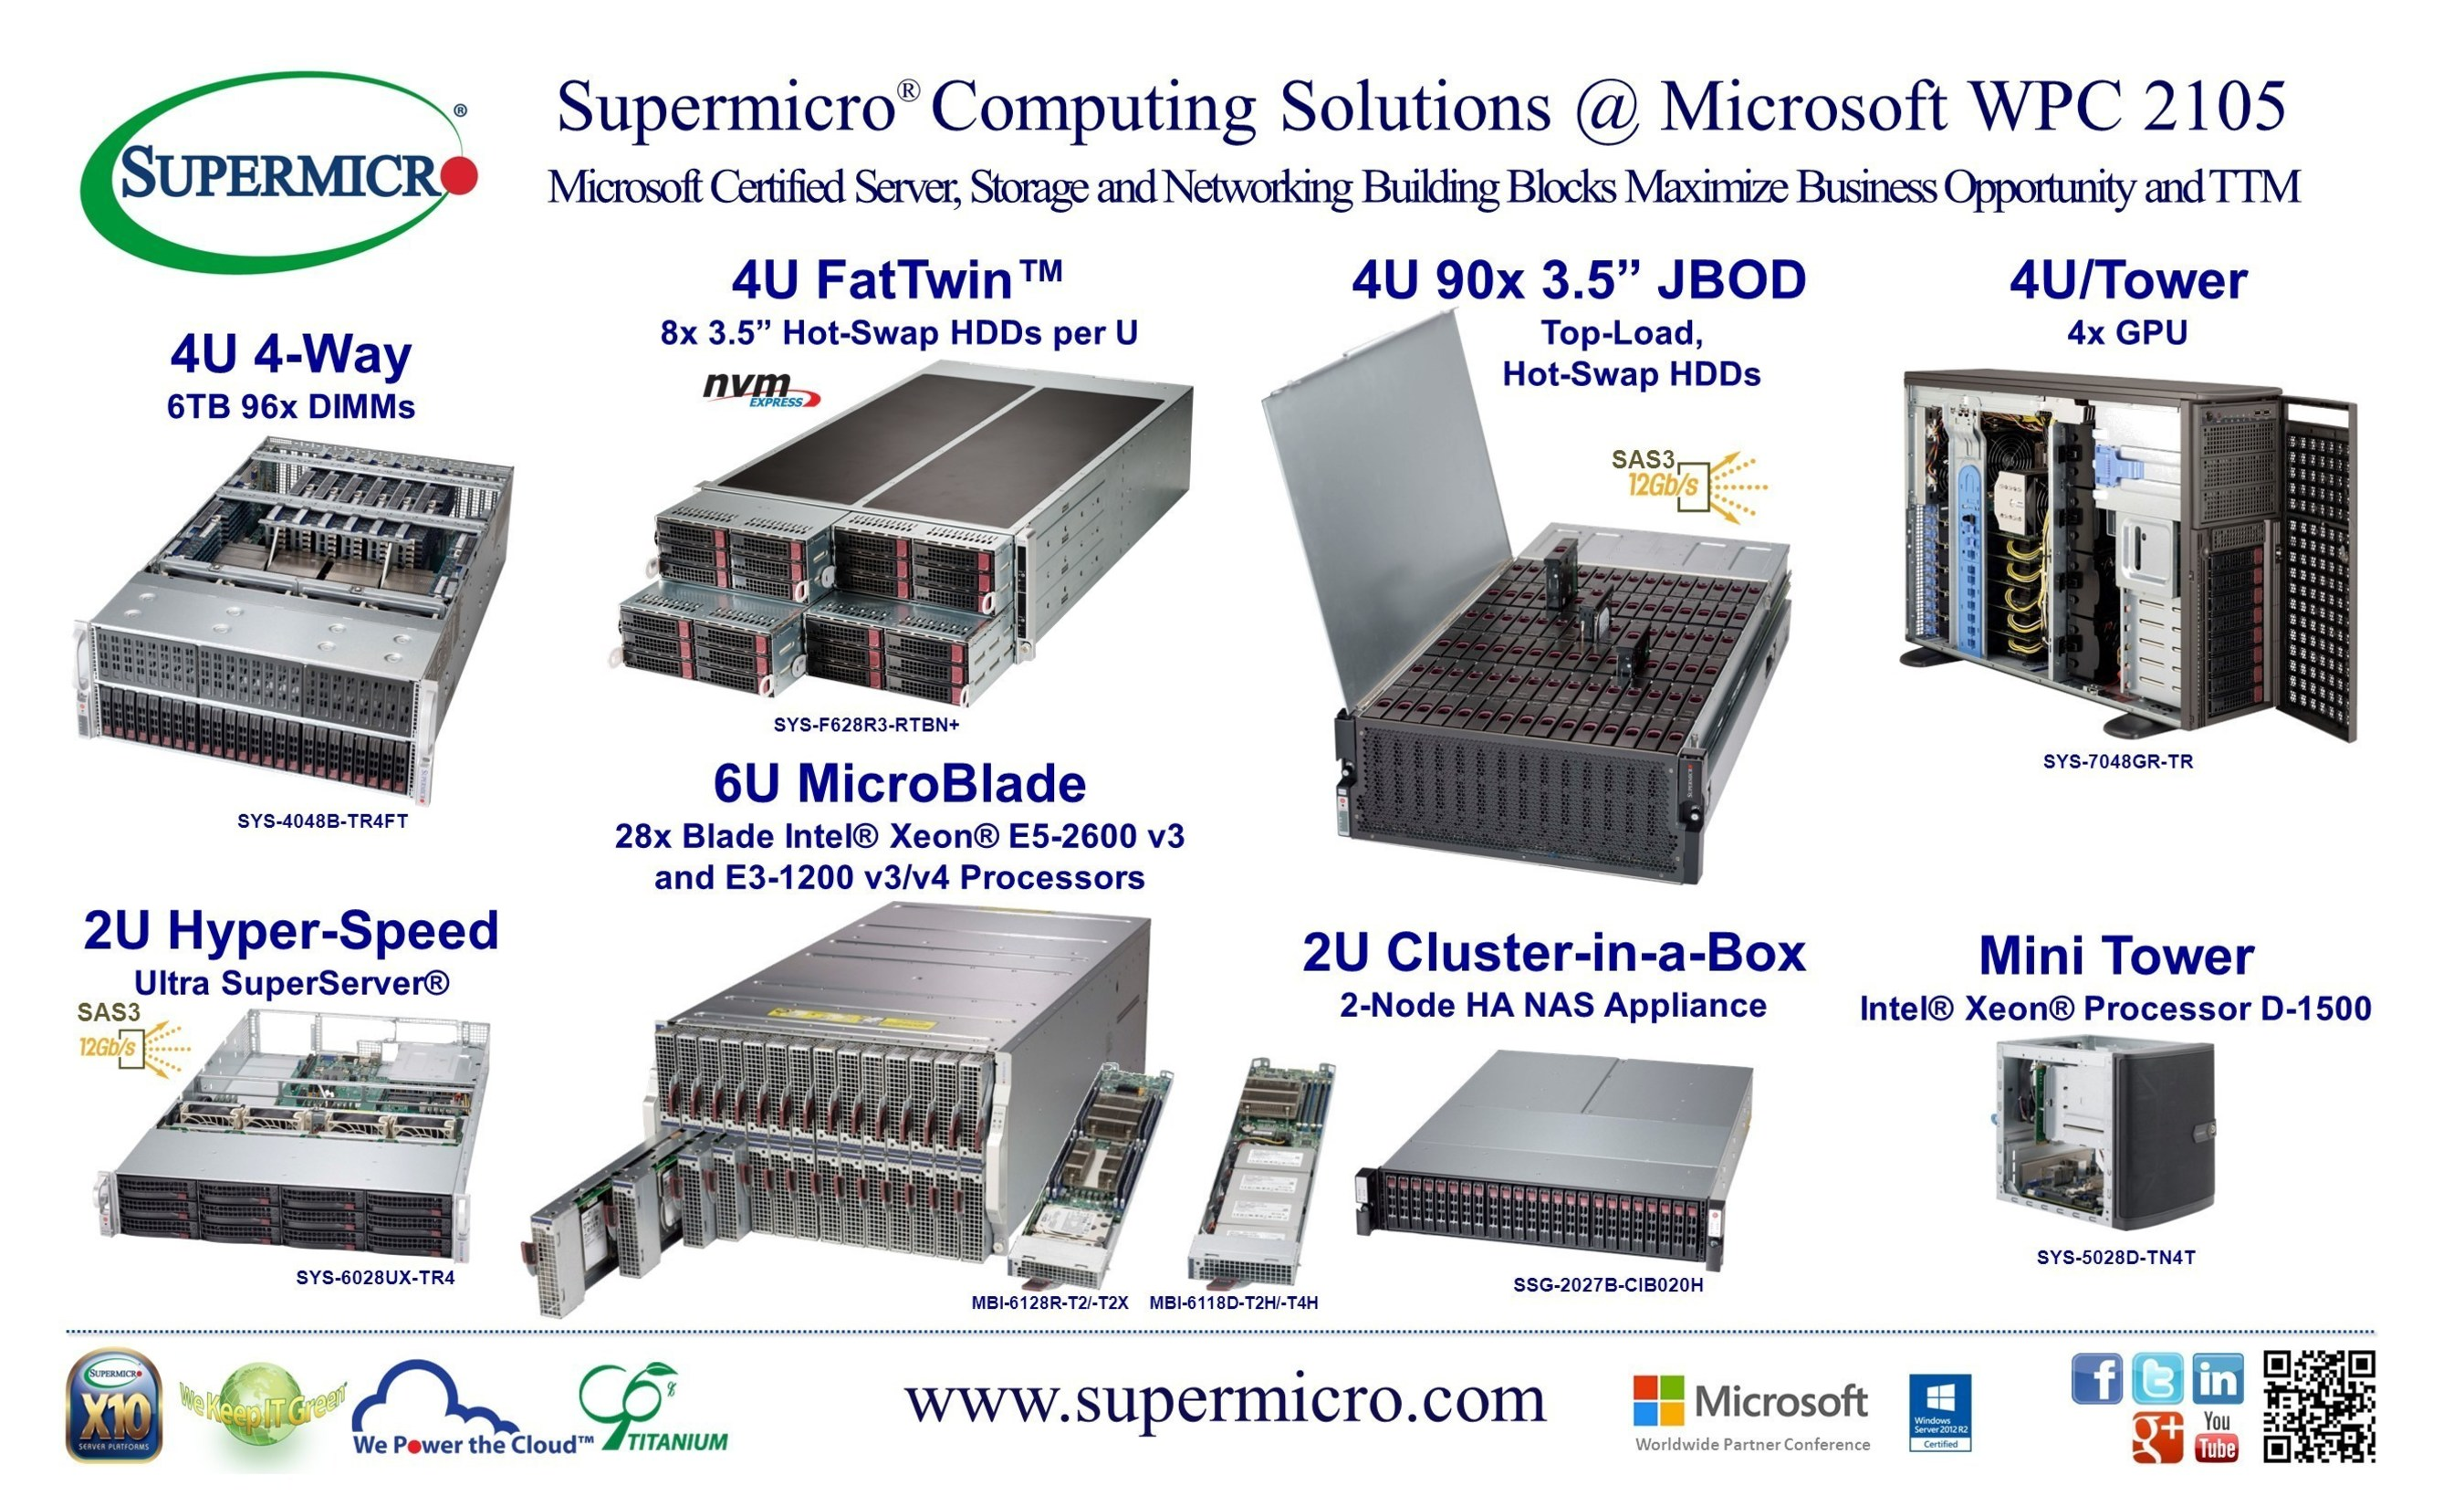 Supermicro(R) Computing Solutions @ Microsoft Worldwide Partner Conference (WPC) 2015